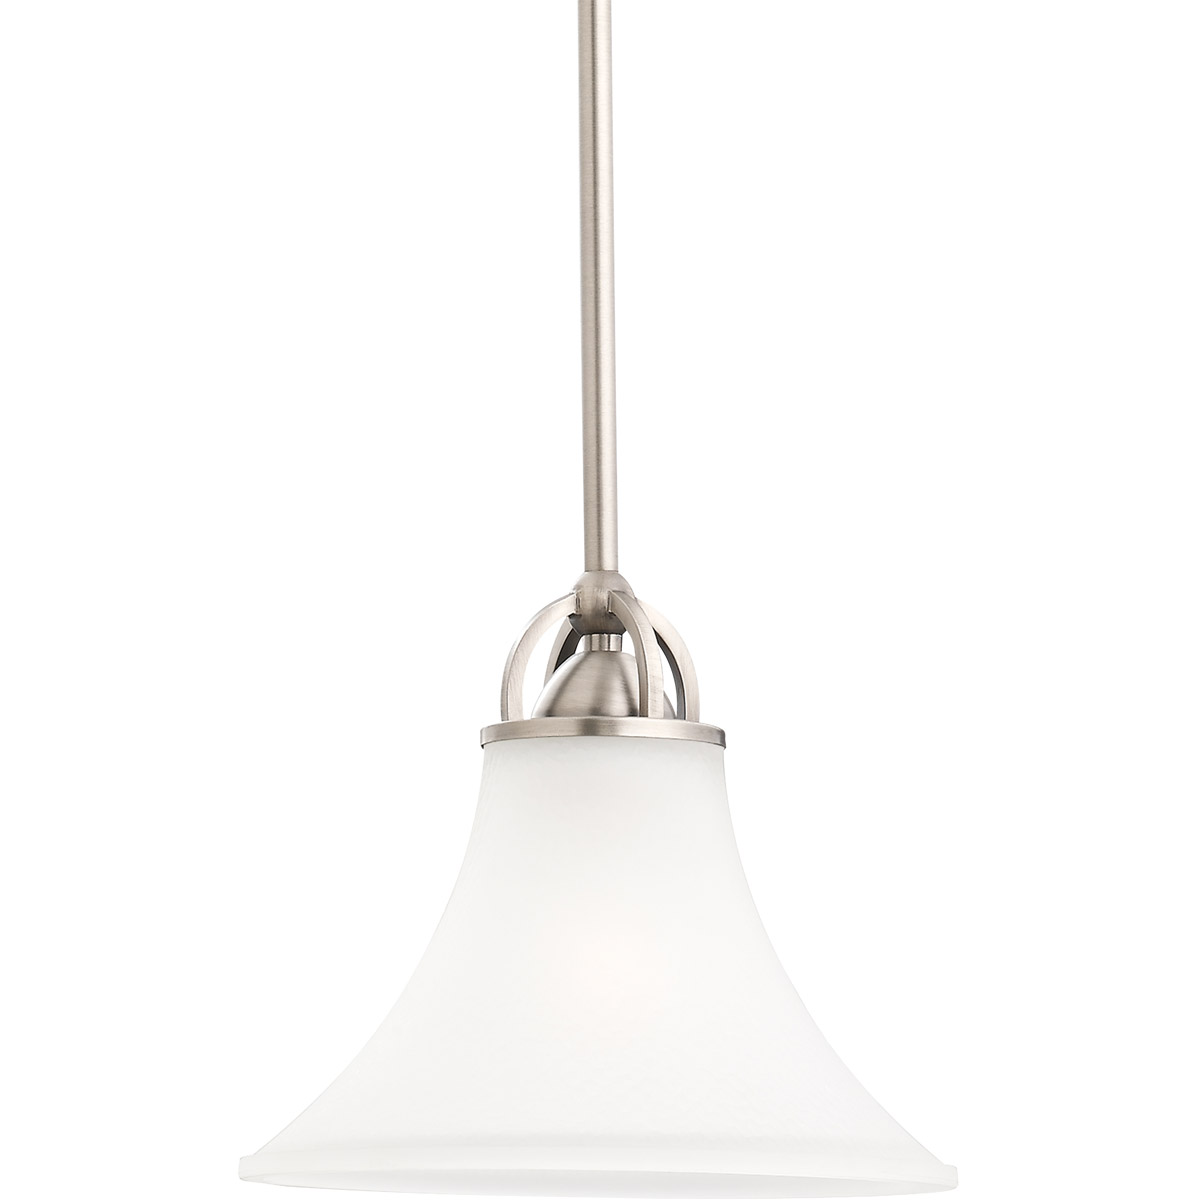 Sea Gull Lighting Somerton 1 Light Mini Pendant in Antique Brushed Nickel 61375-965